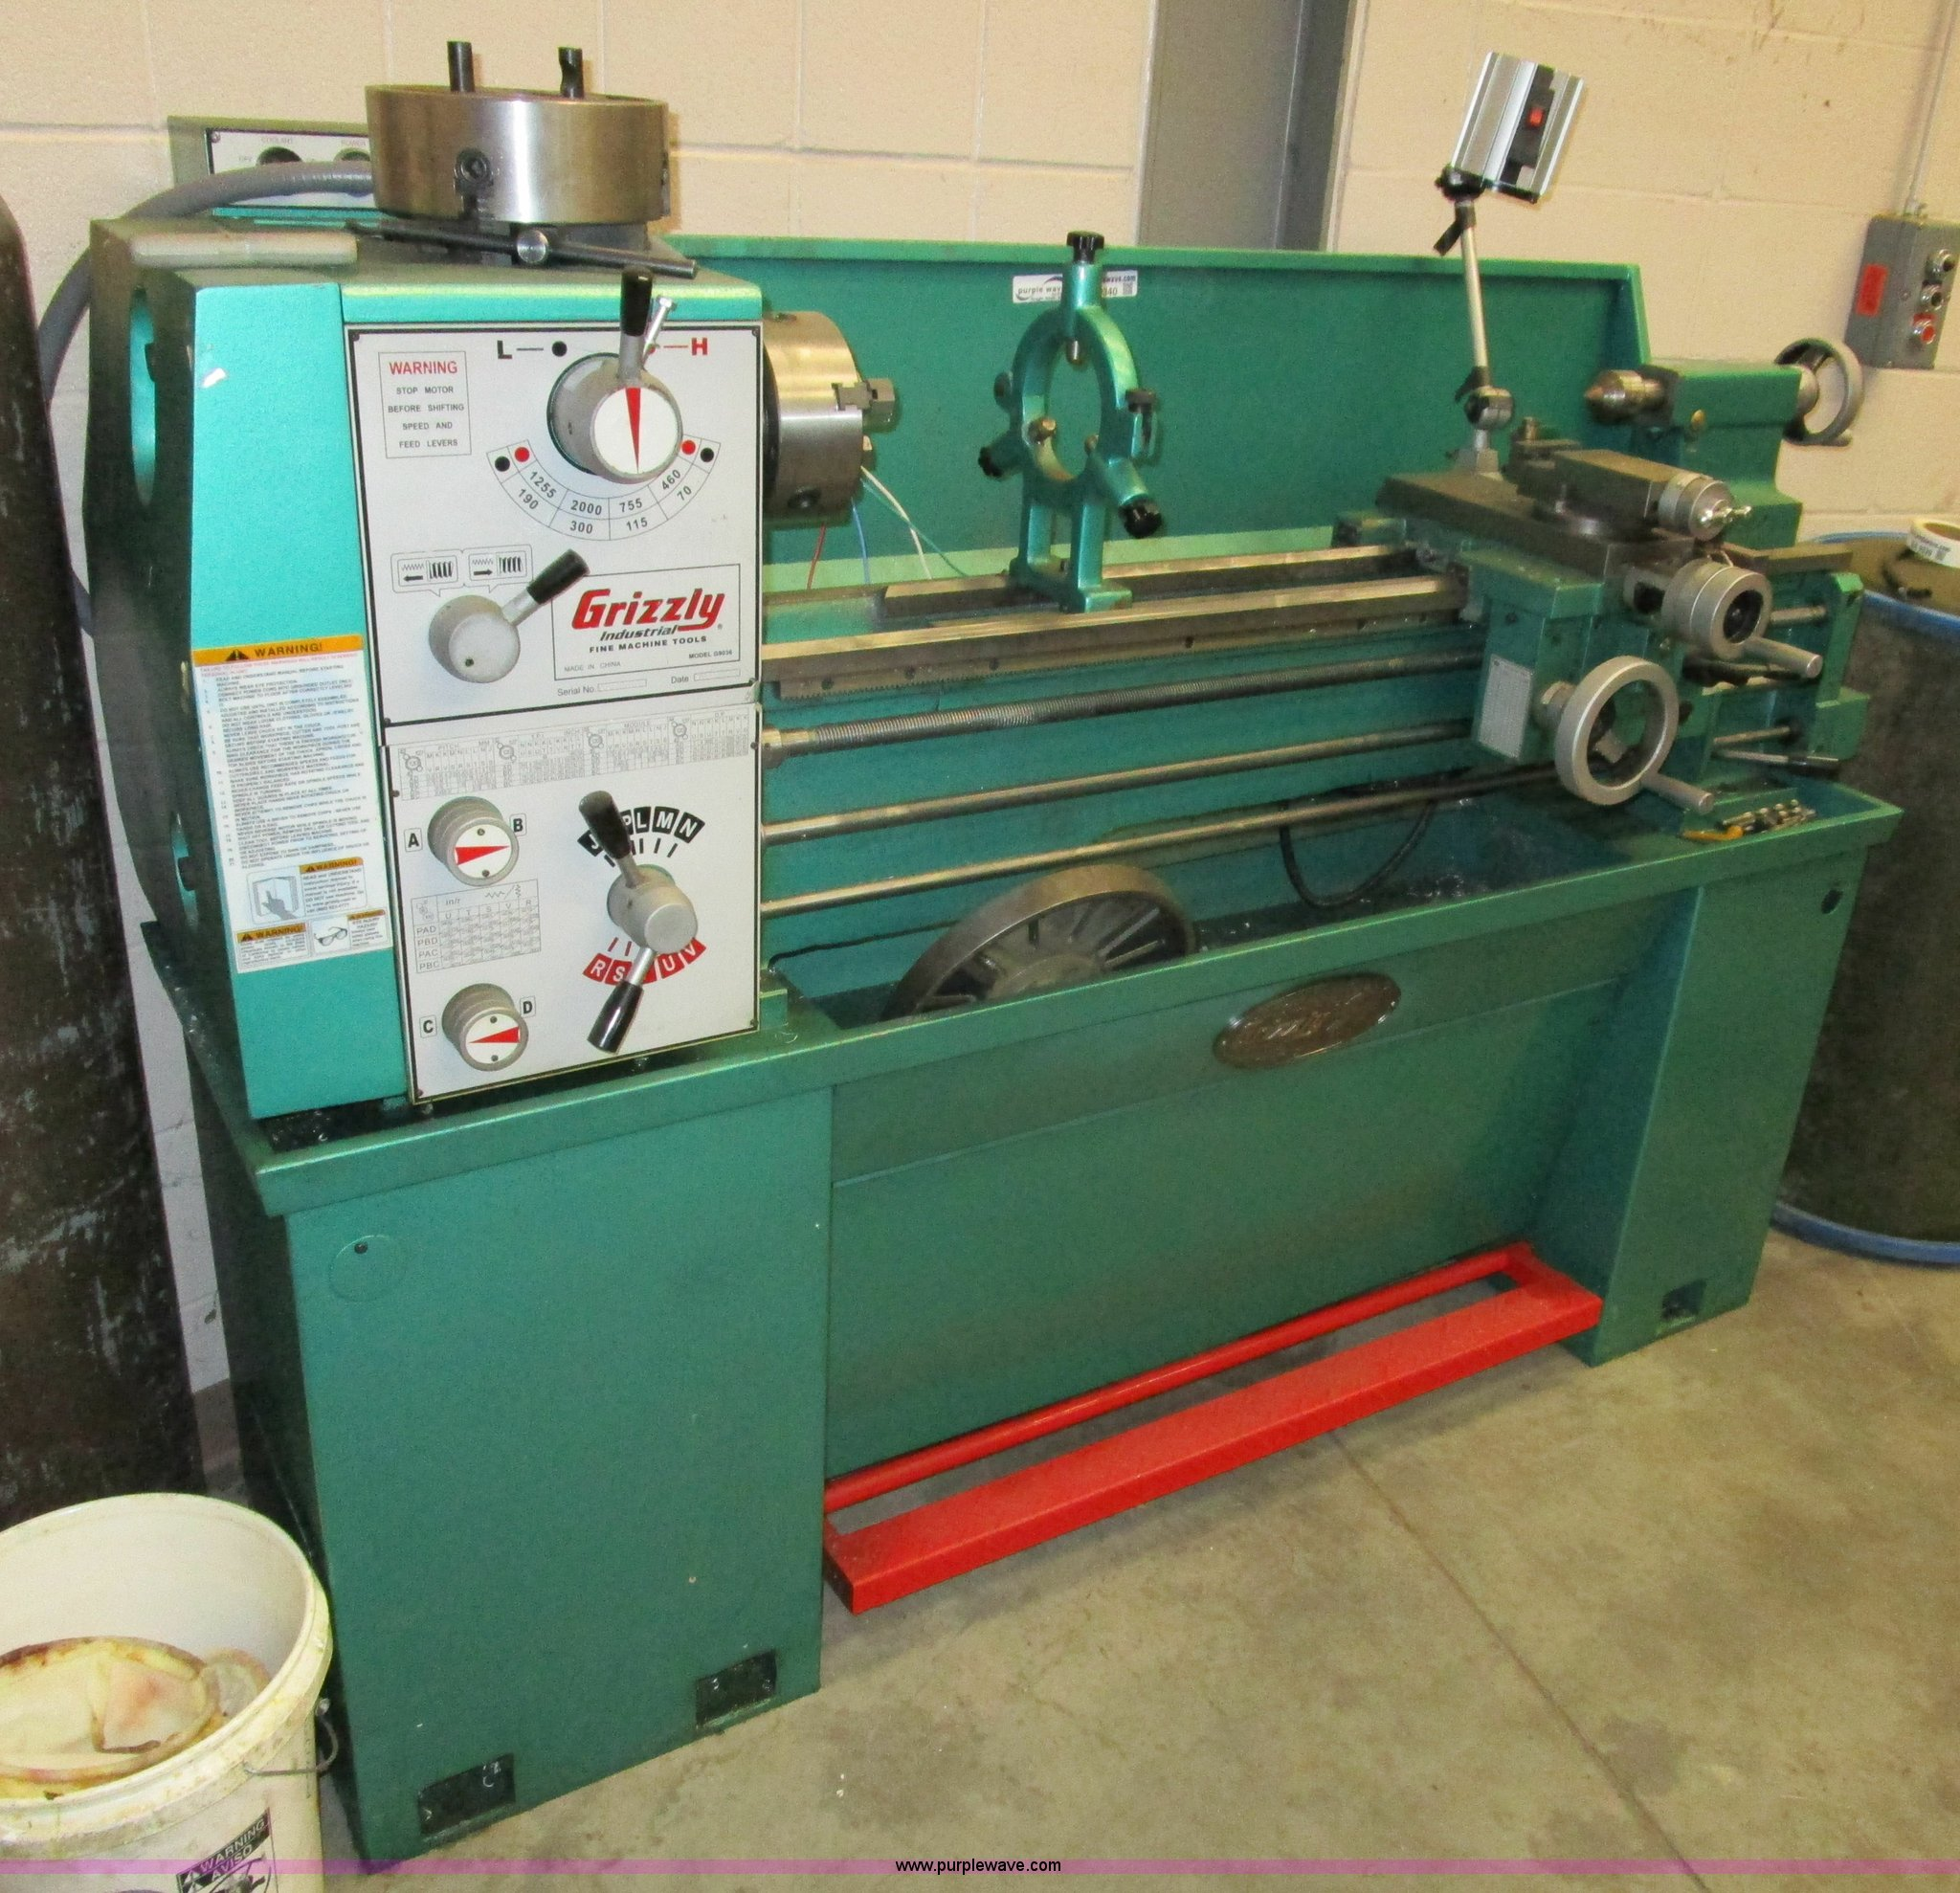 Grizzly G9036 floor lathe   Item BA9340   SOLD! May 5 Govern